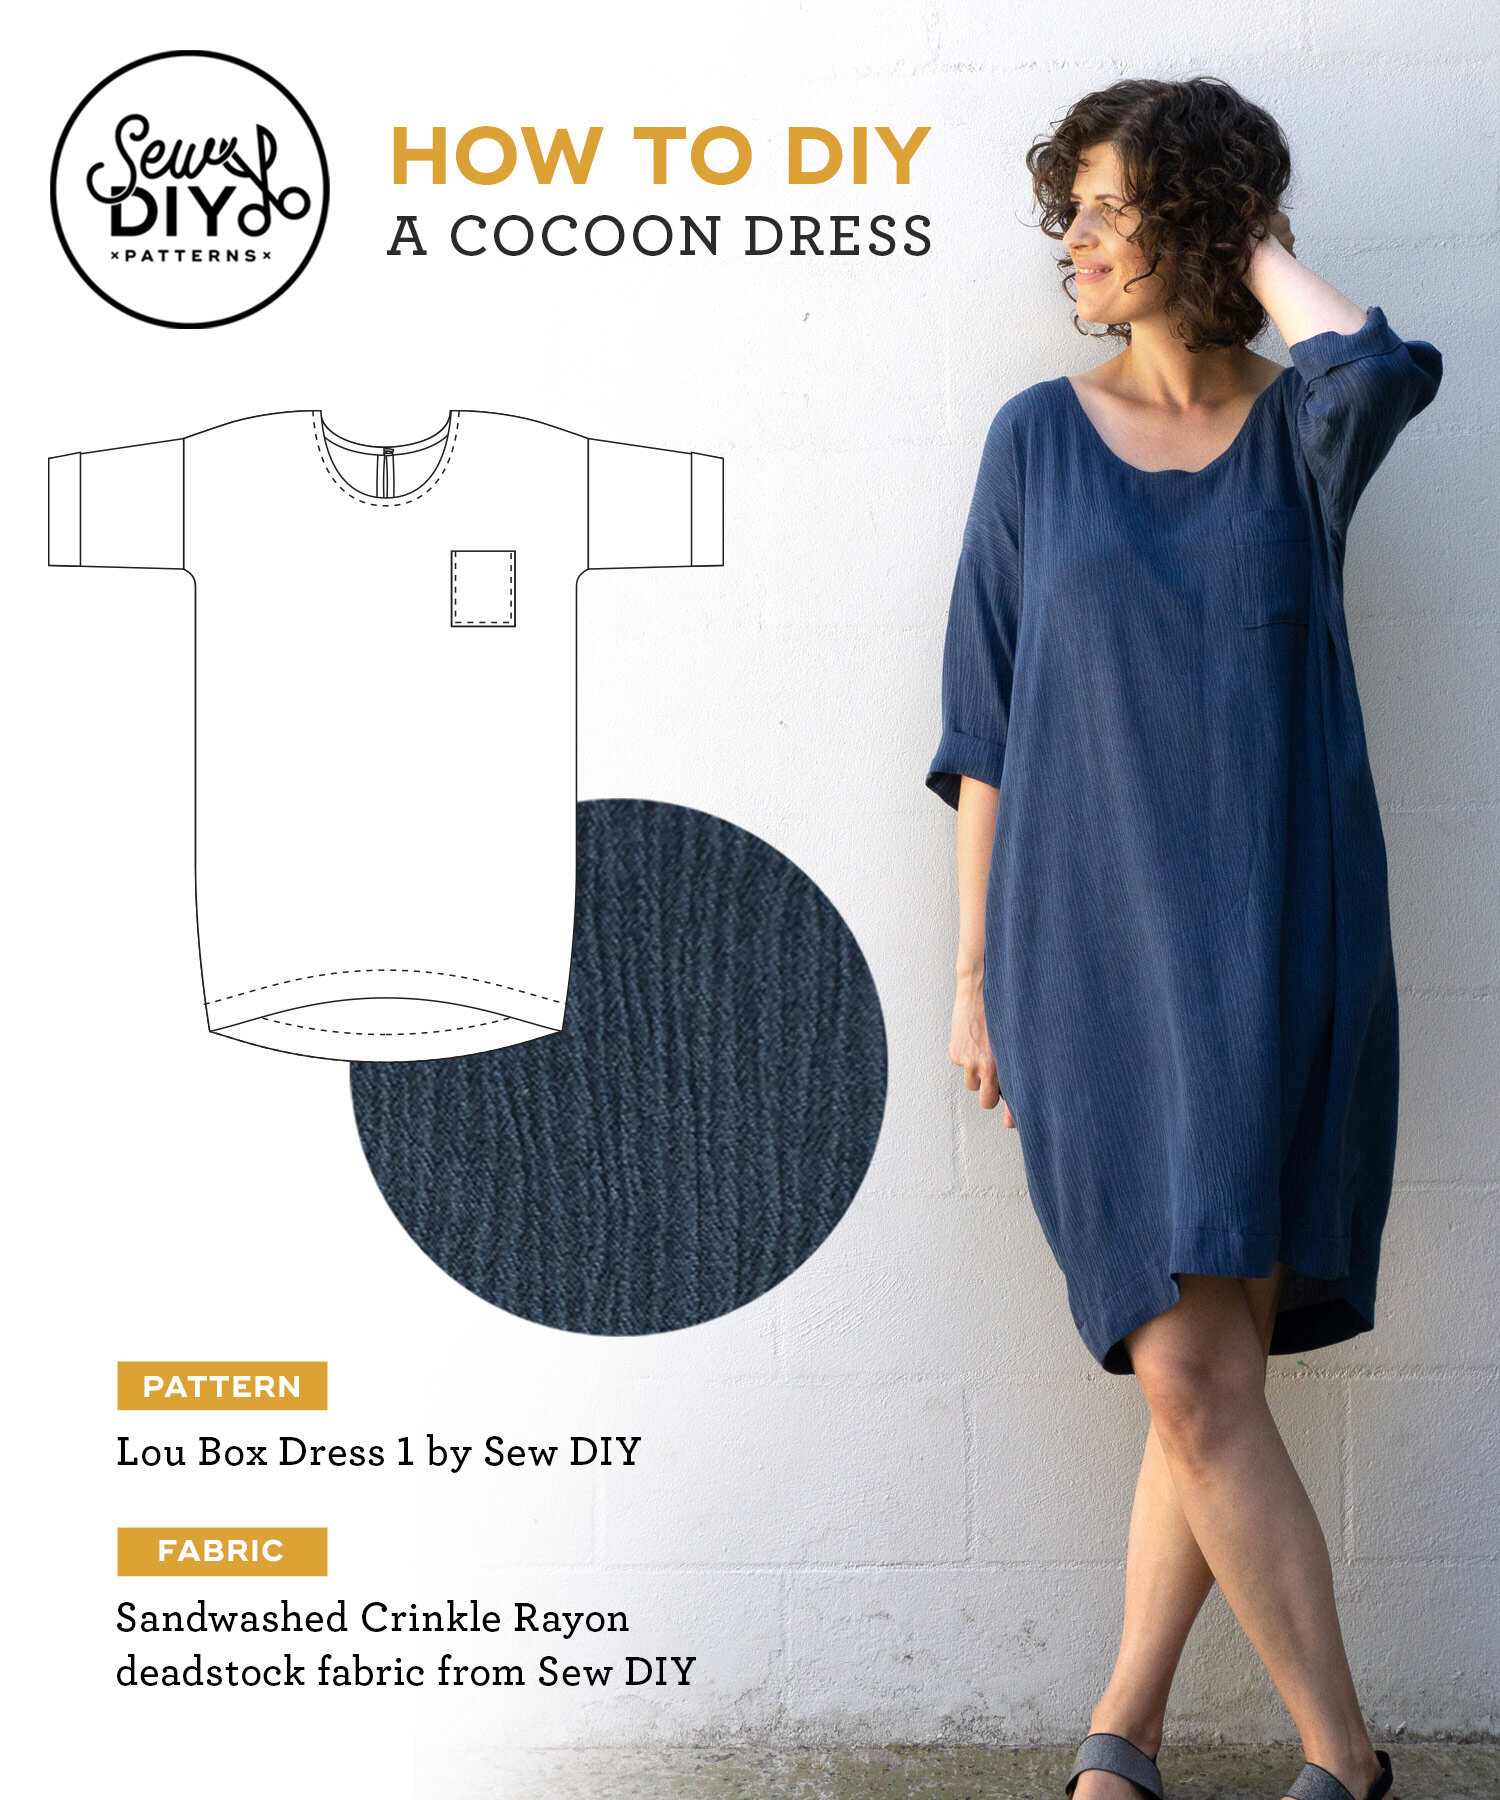 How to DIY a cocoon dress by Sew DIY